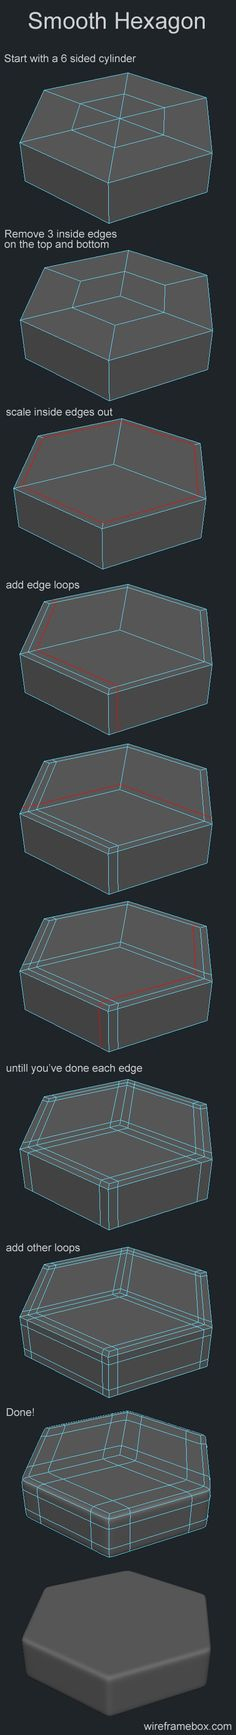 FAQ: How u model dem shapes? Hands-on mini-tuts for mechanical sub-d AKA ADD MORE GEO - Page 78 - Polycount Forum